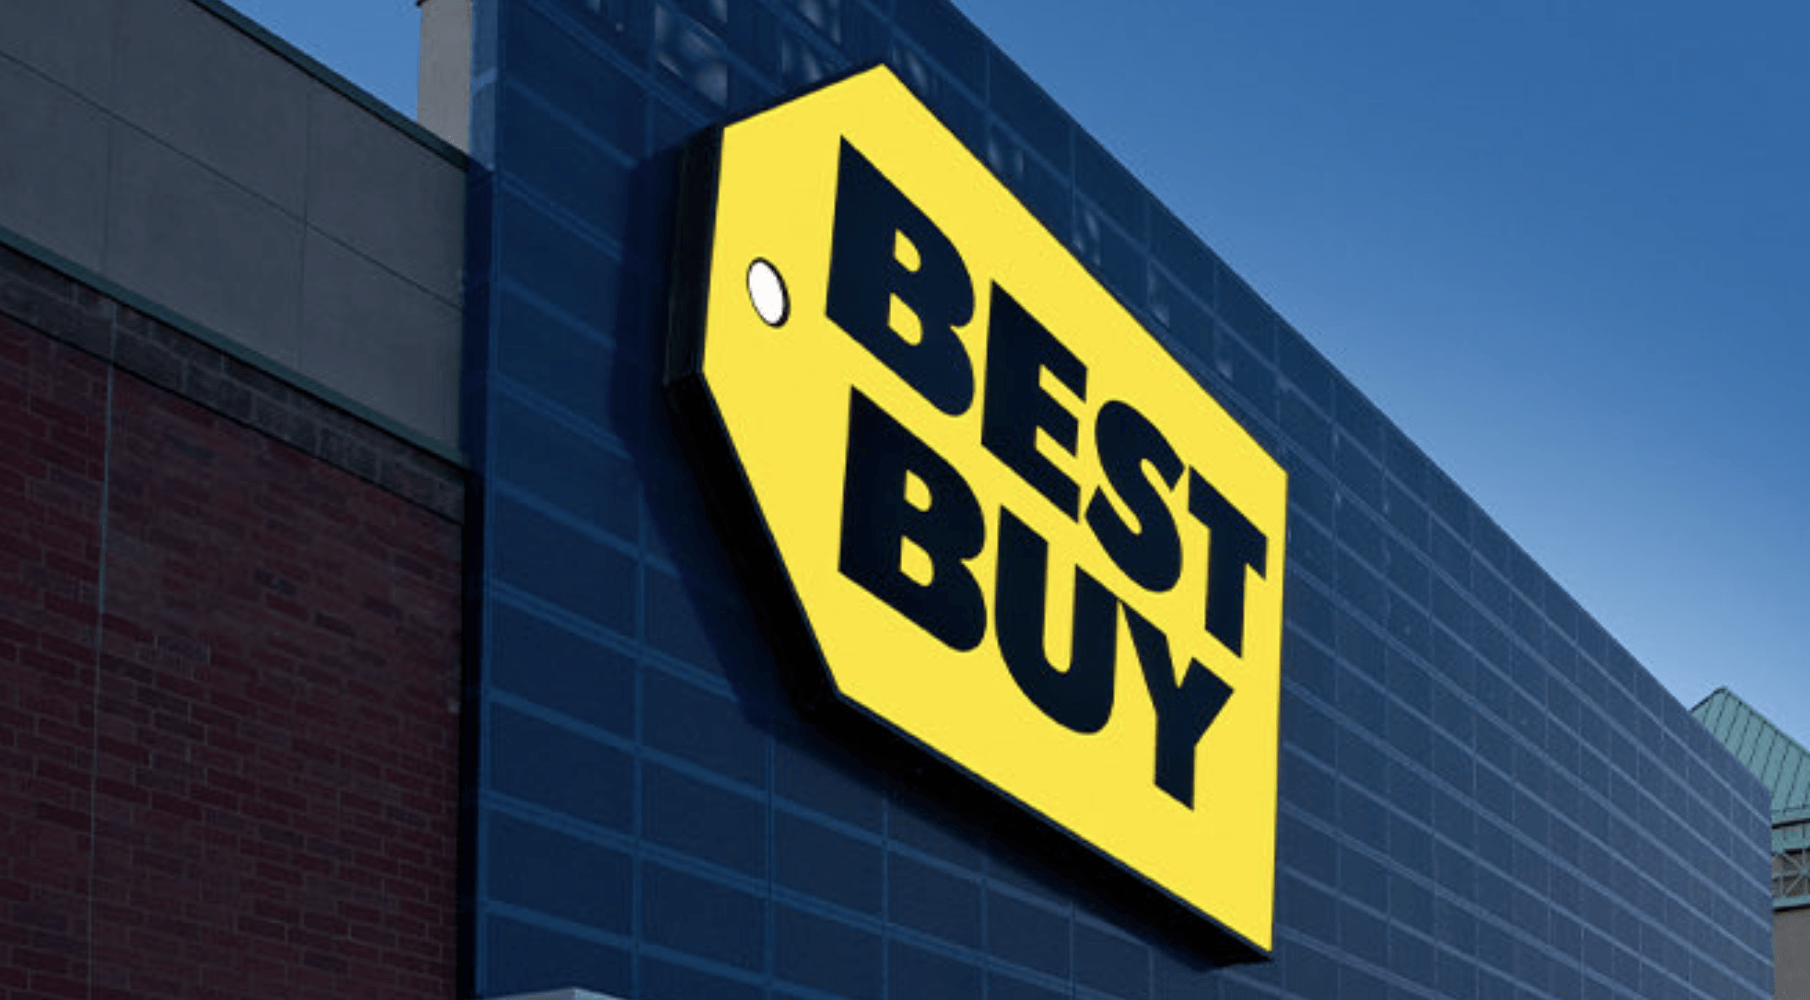 Best Buy Logo - Best Buy: Ignored Work From Home Play (NYSE:BBY) | Seeking Alpha